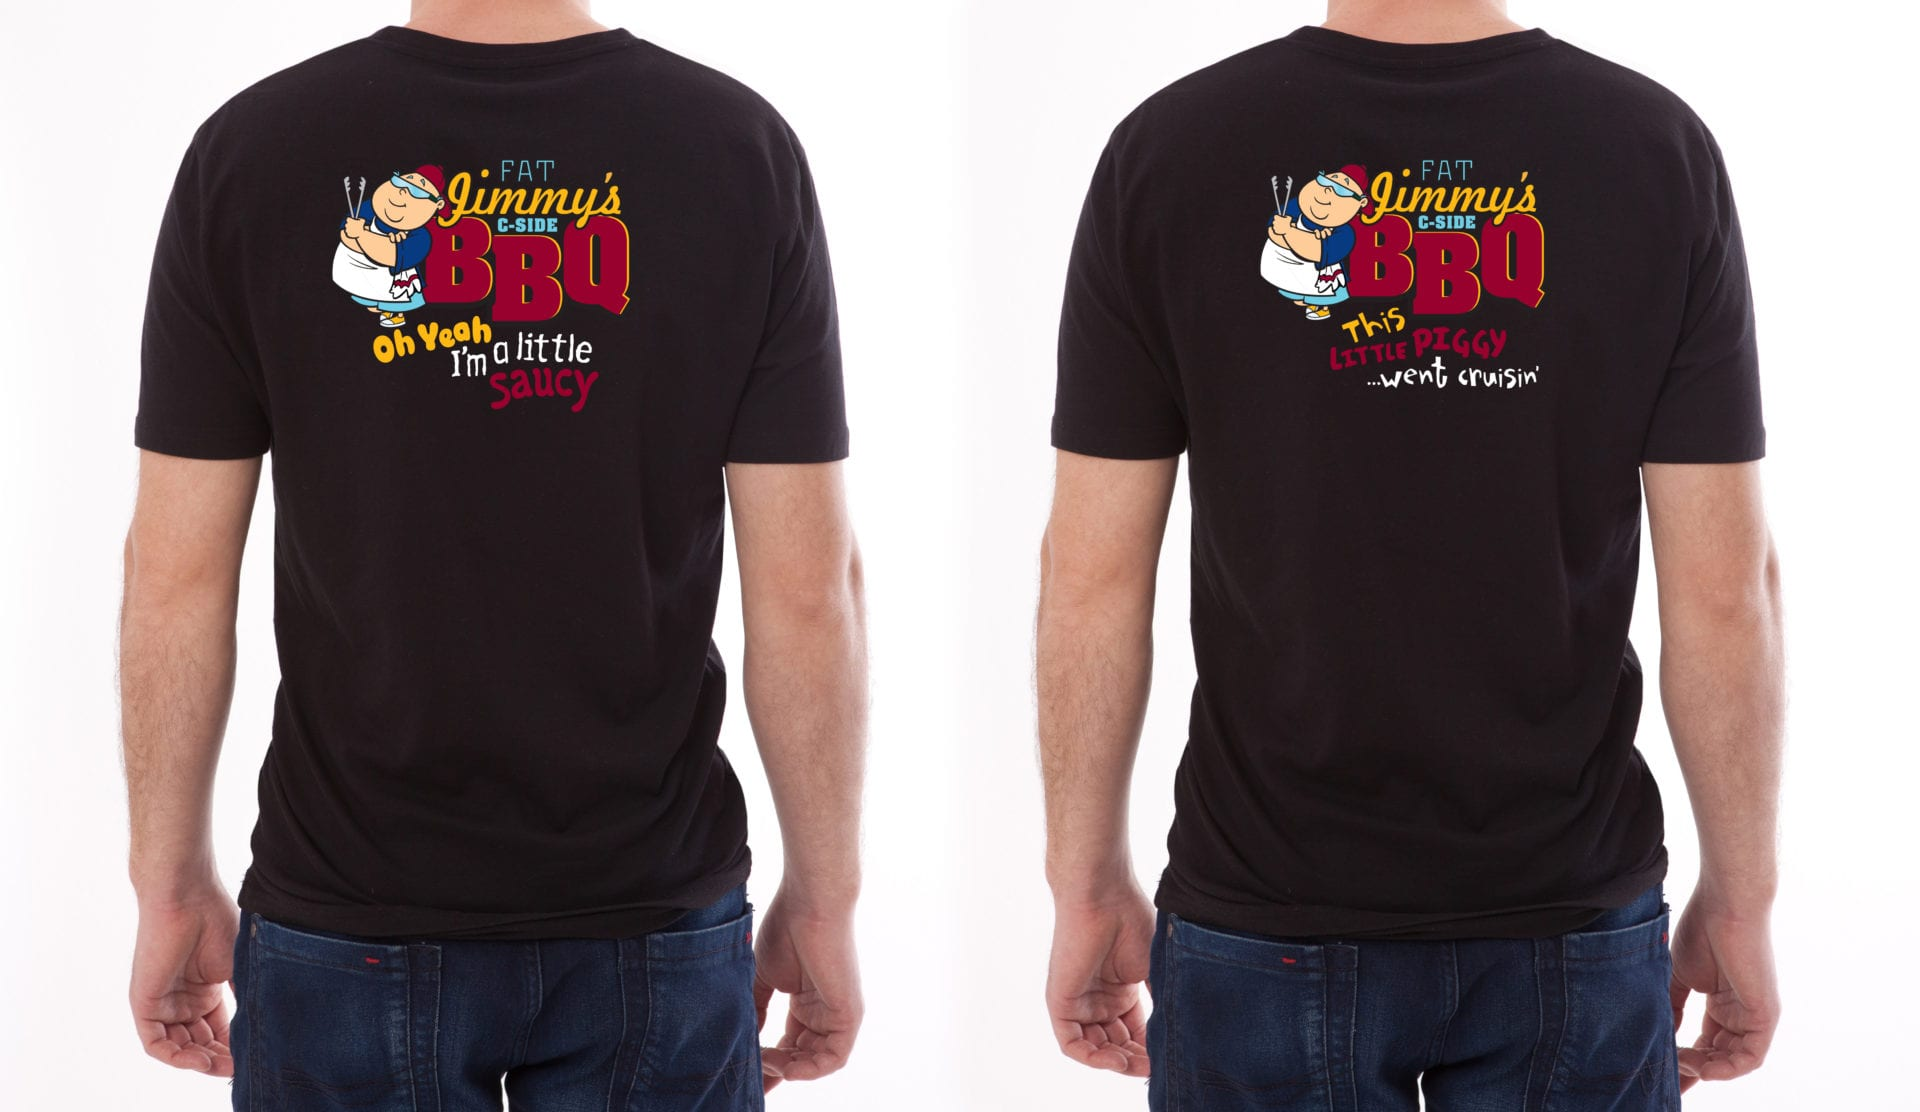 A black t-shirt with Jimmy's C-Side BBQ logo.